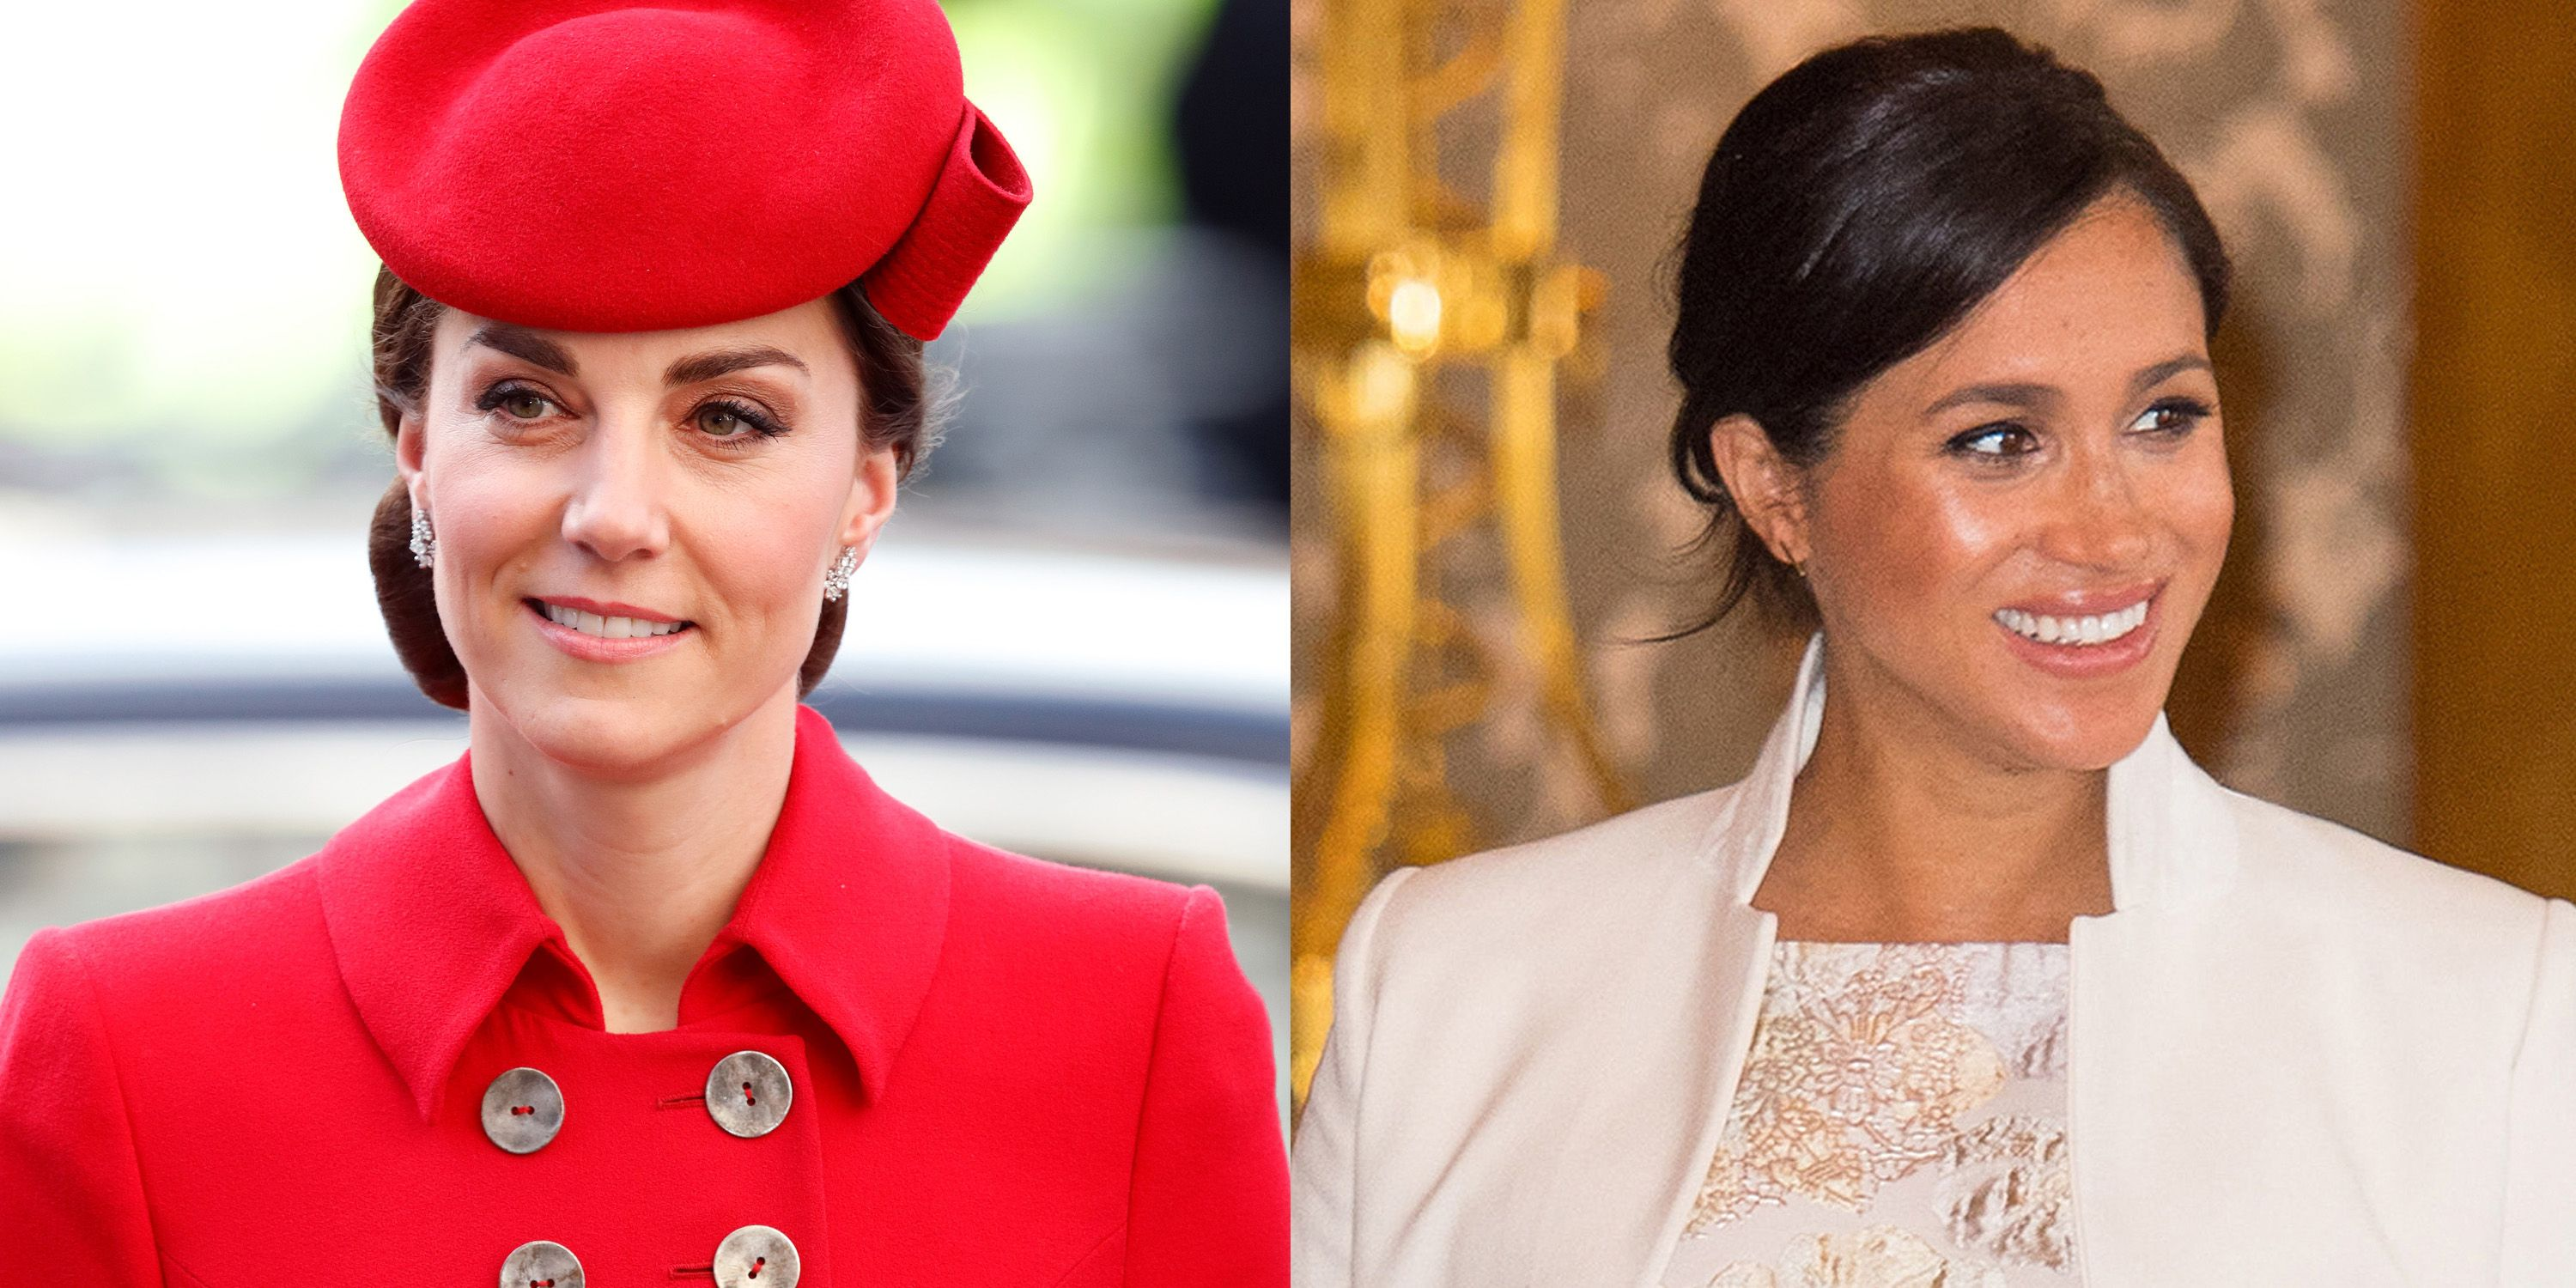 These Are Kate Middleton and Meghan Markle's Most Influential Looks So Far This Year